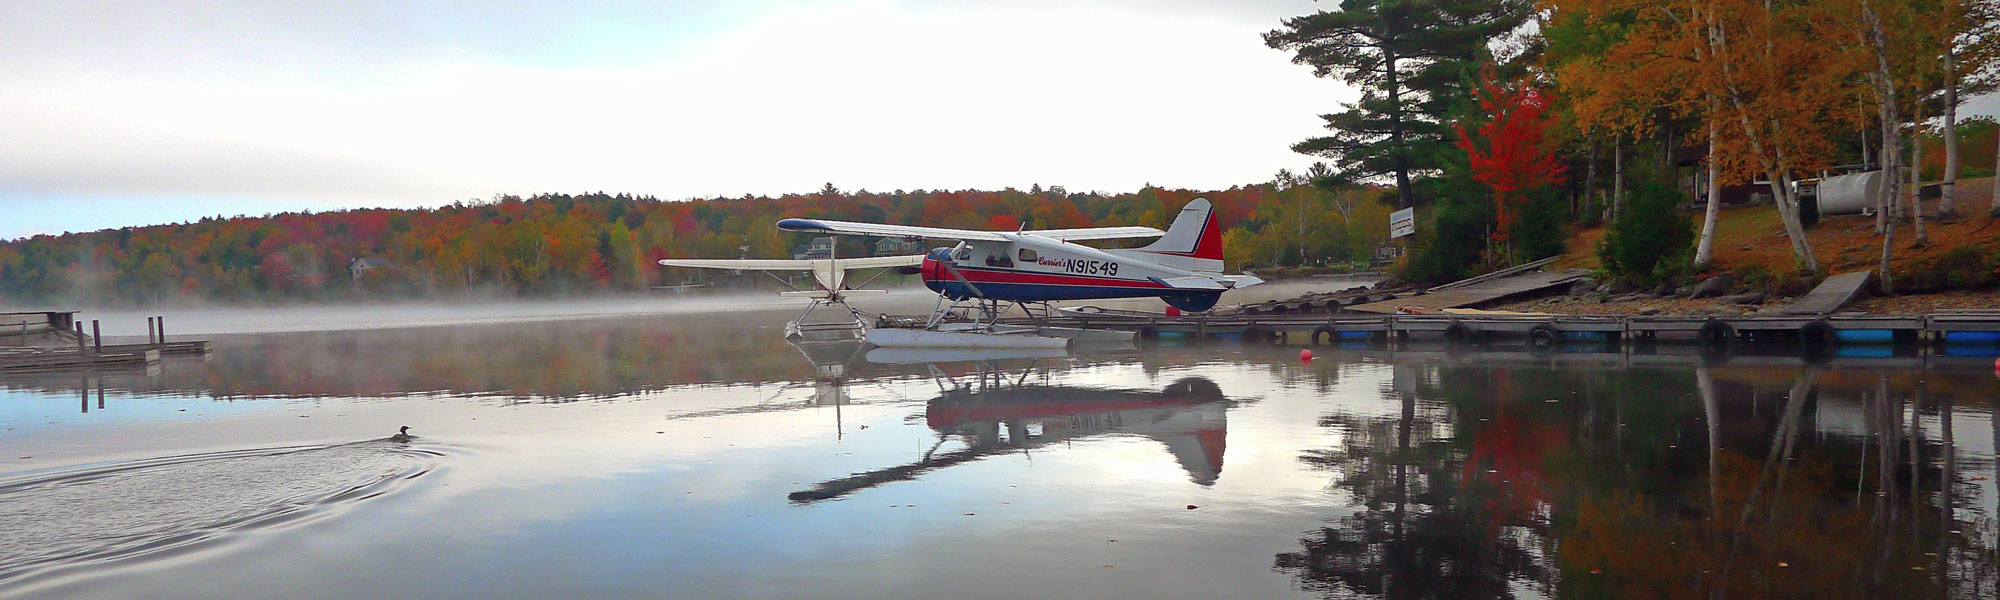 Sea planes on peaceful Moosehead Lake